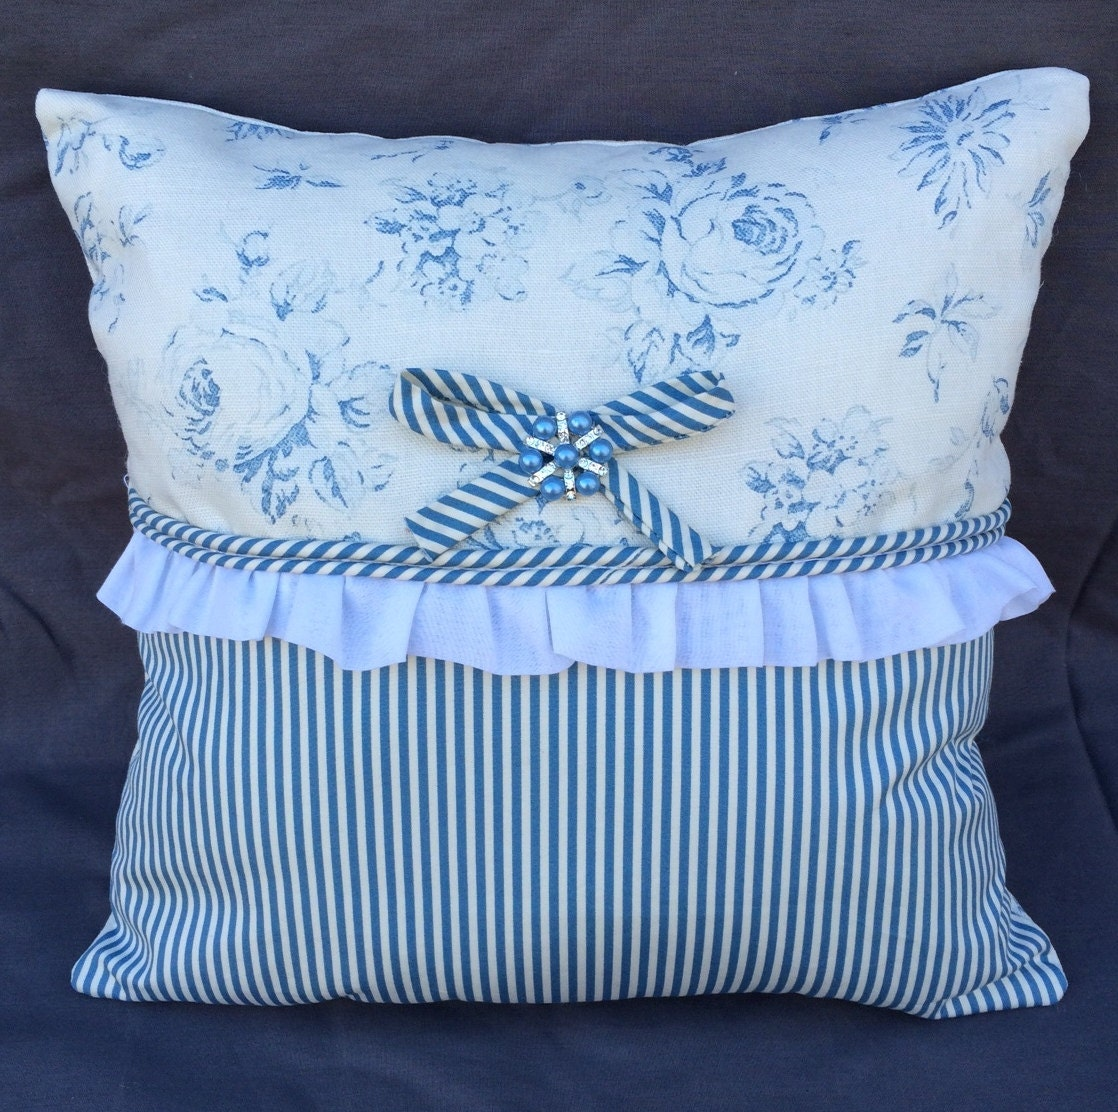 Shabby Chic Linen Pillows : Shabby Chic Rose linen Ralph Lauren fabric pillow with ruffle